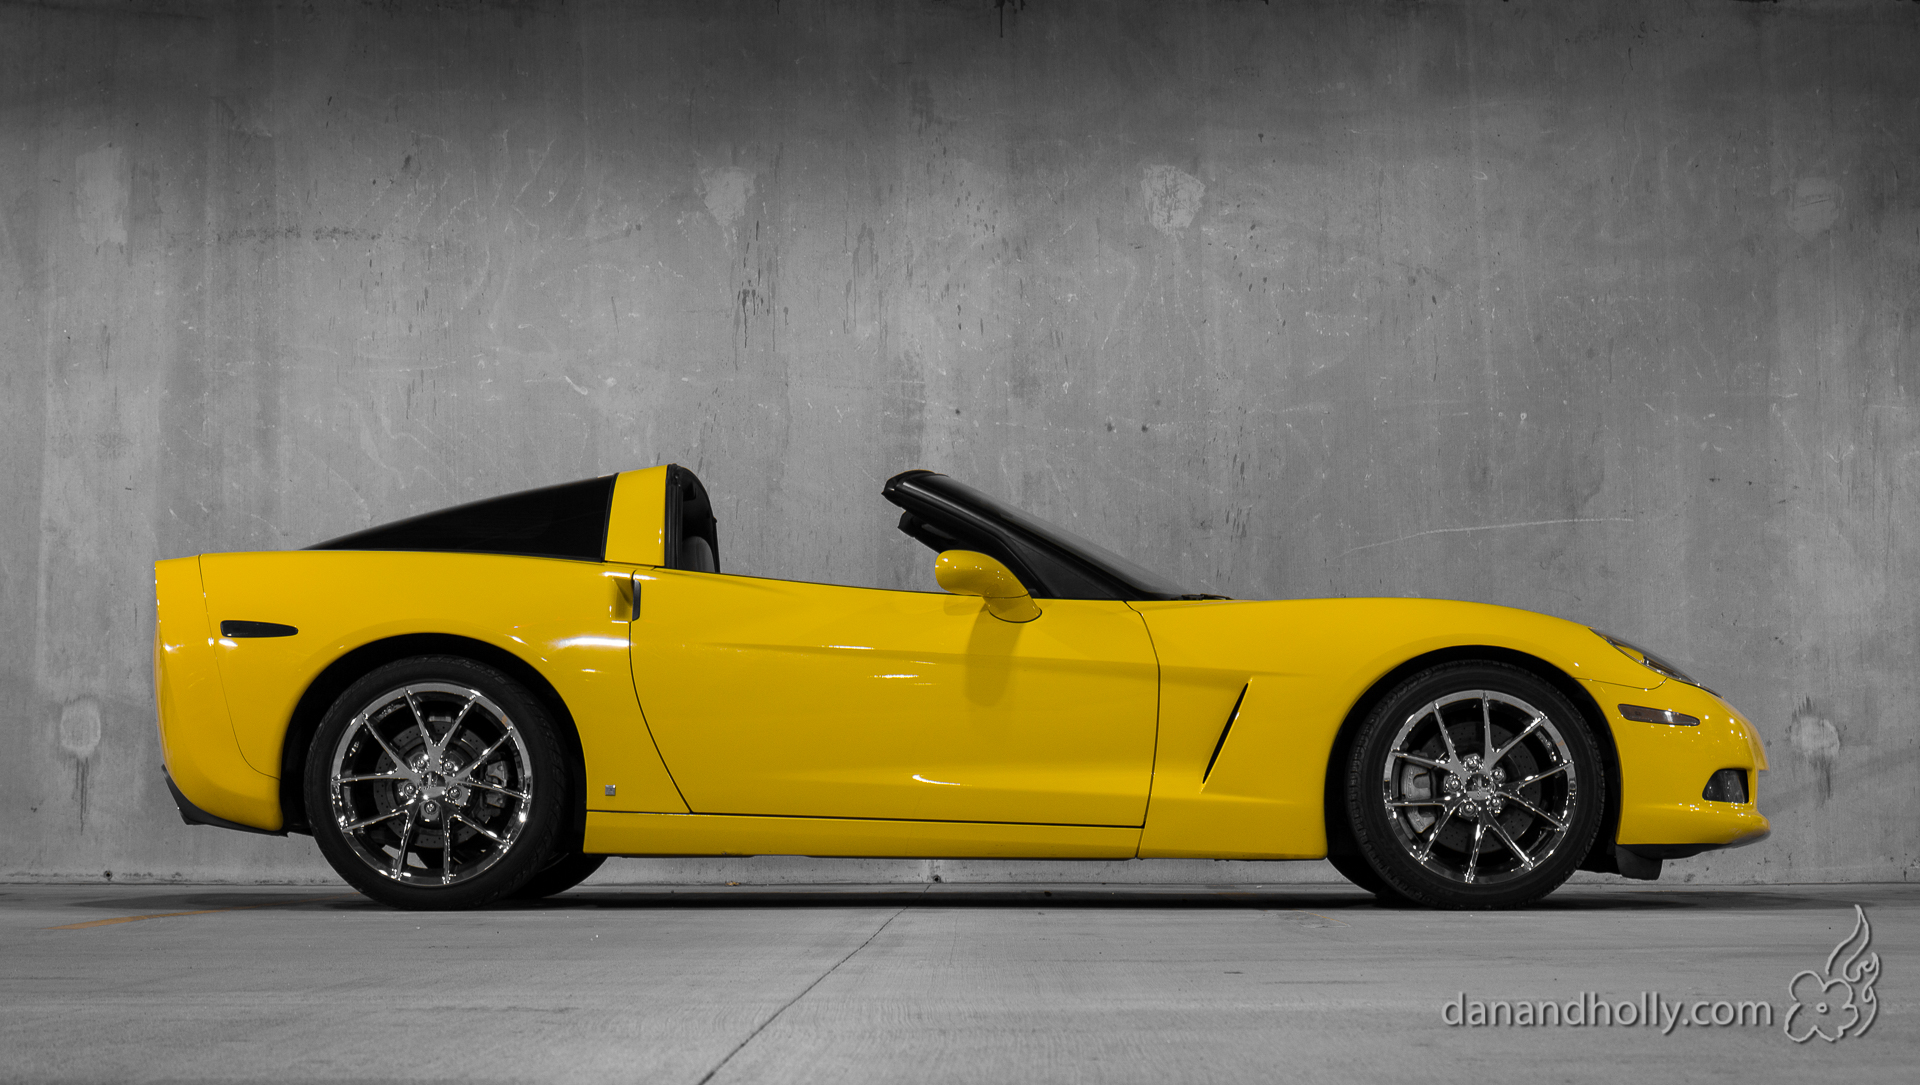 POTW: Little Yellow Corvette